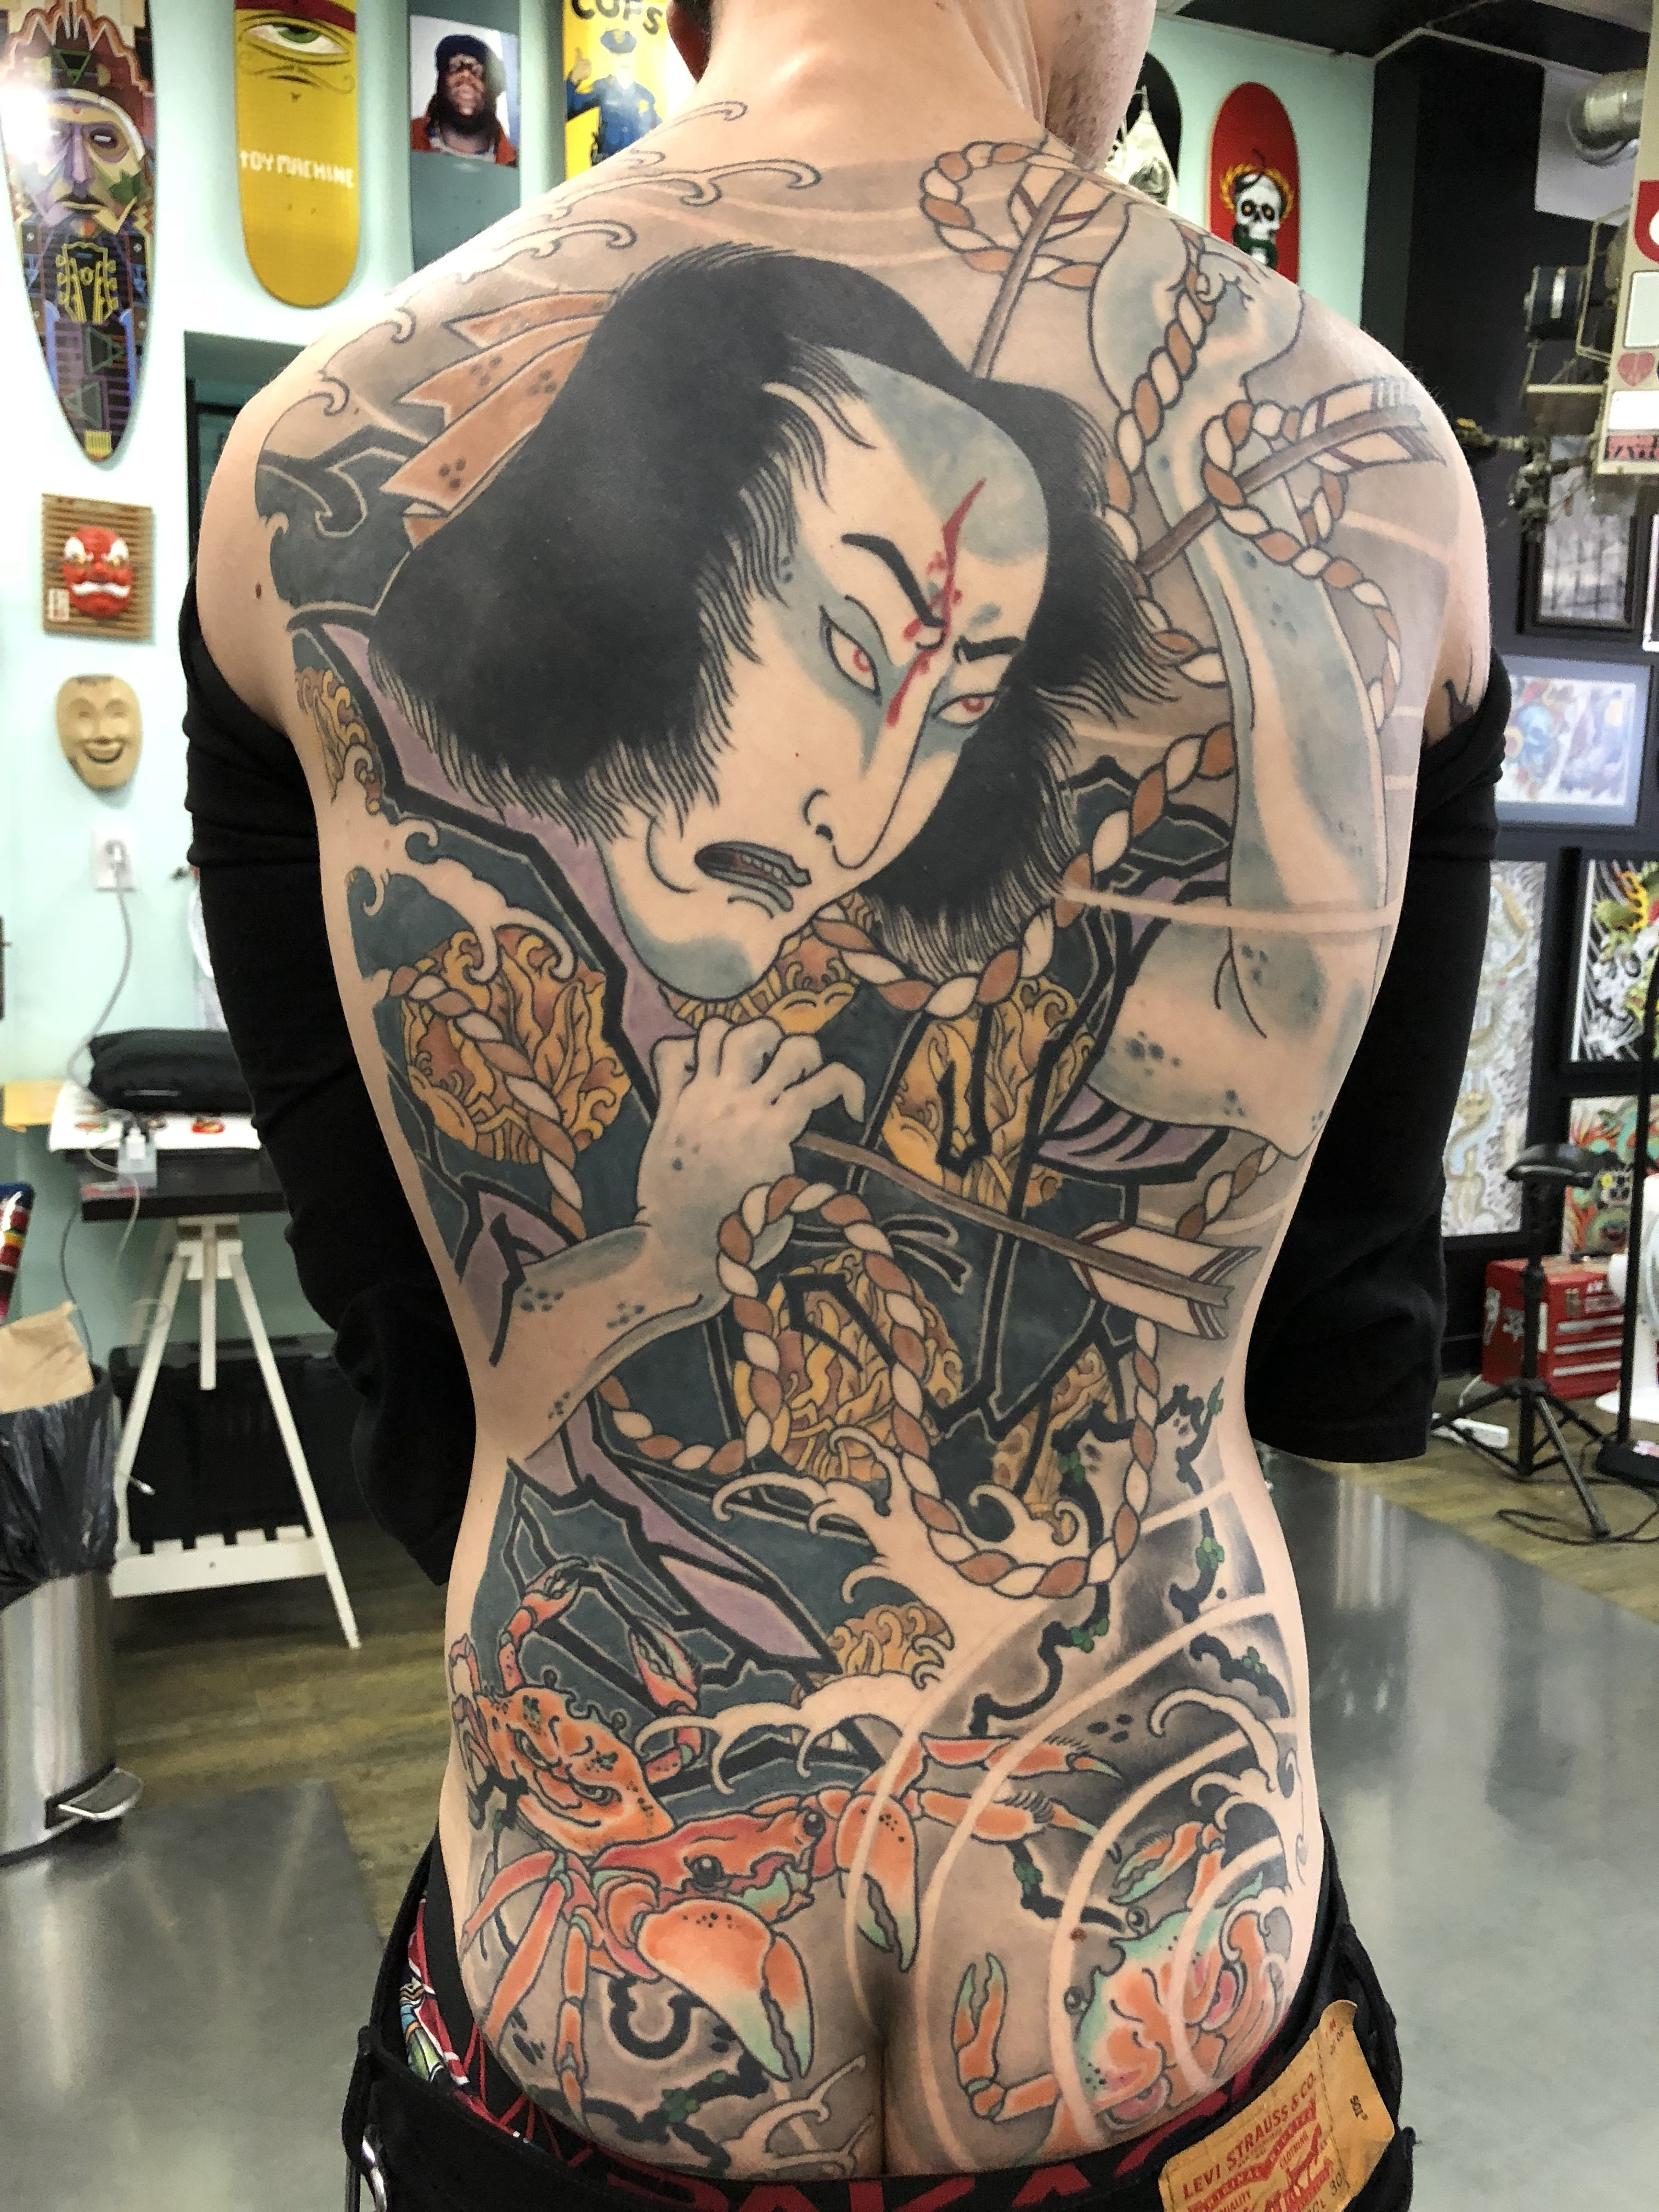 Nick Matovich Tattoo 2019 Okanagan Tattoo Show & Brewfest Artist